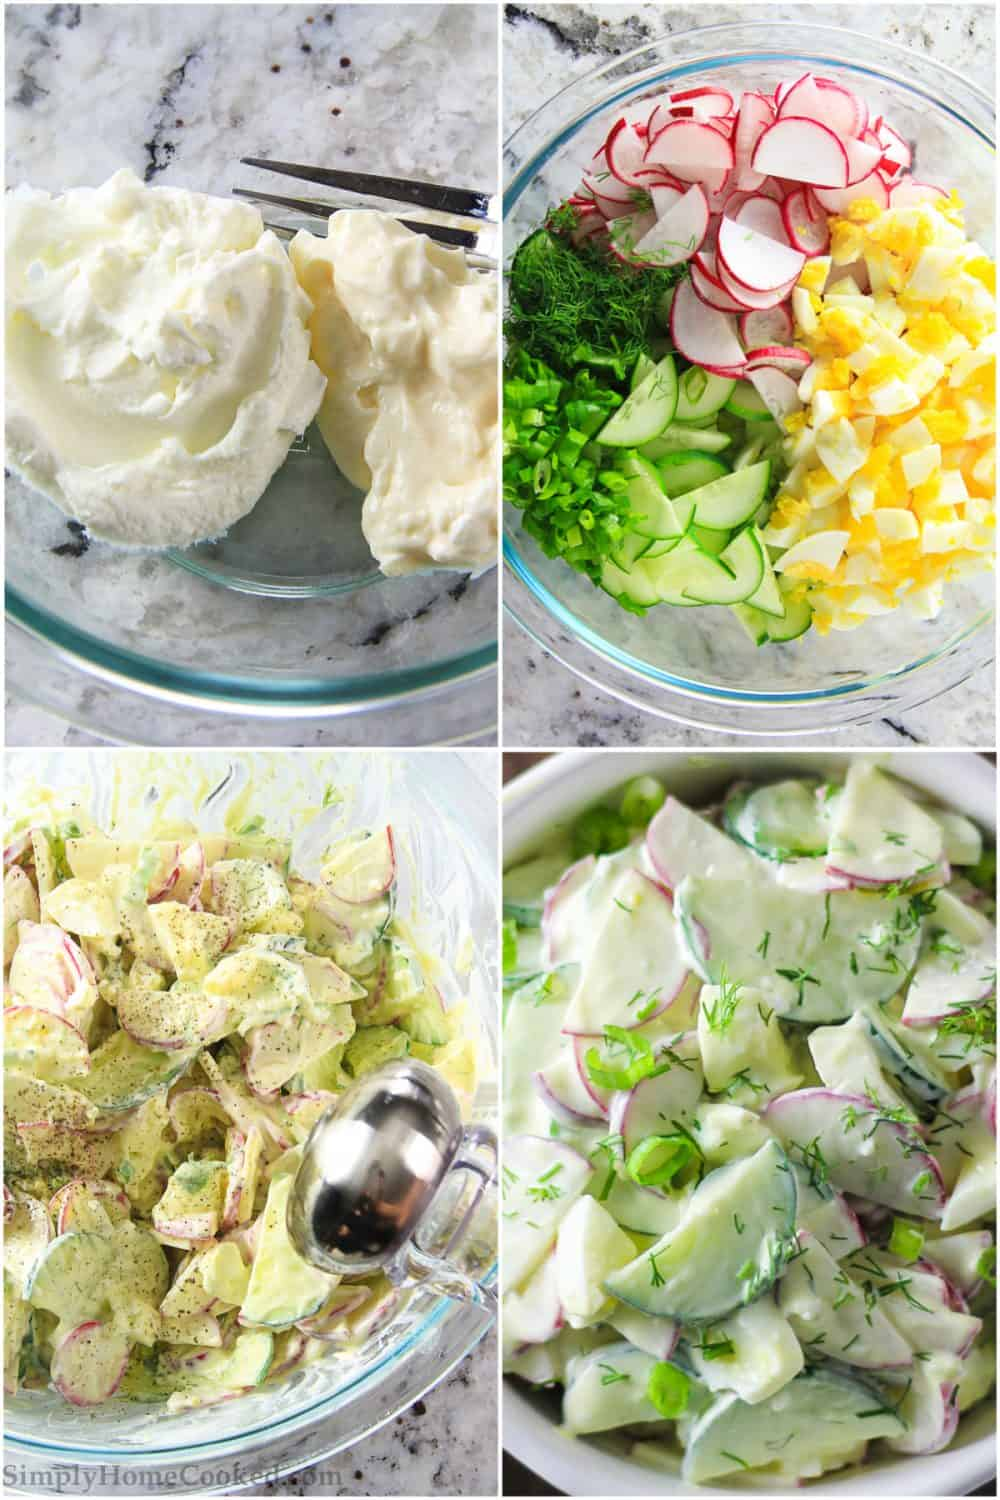 Photo collage of the step by step process of preparing and mixing together the radish salad with cucumbers and eggs